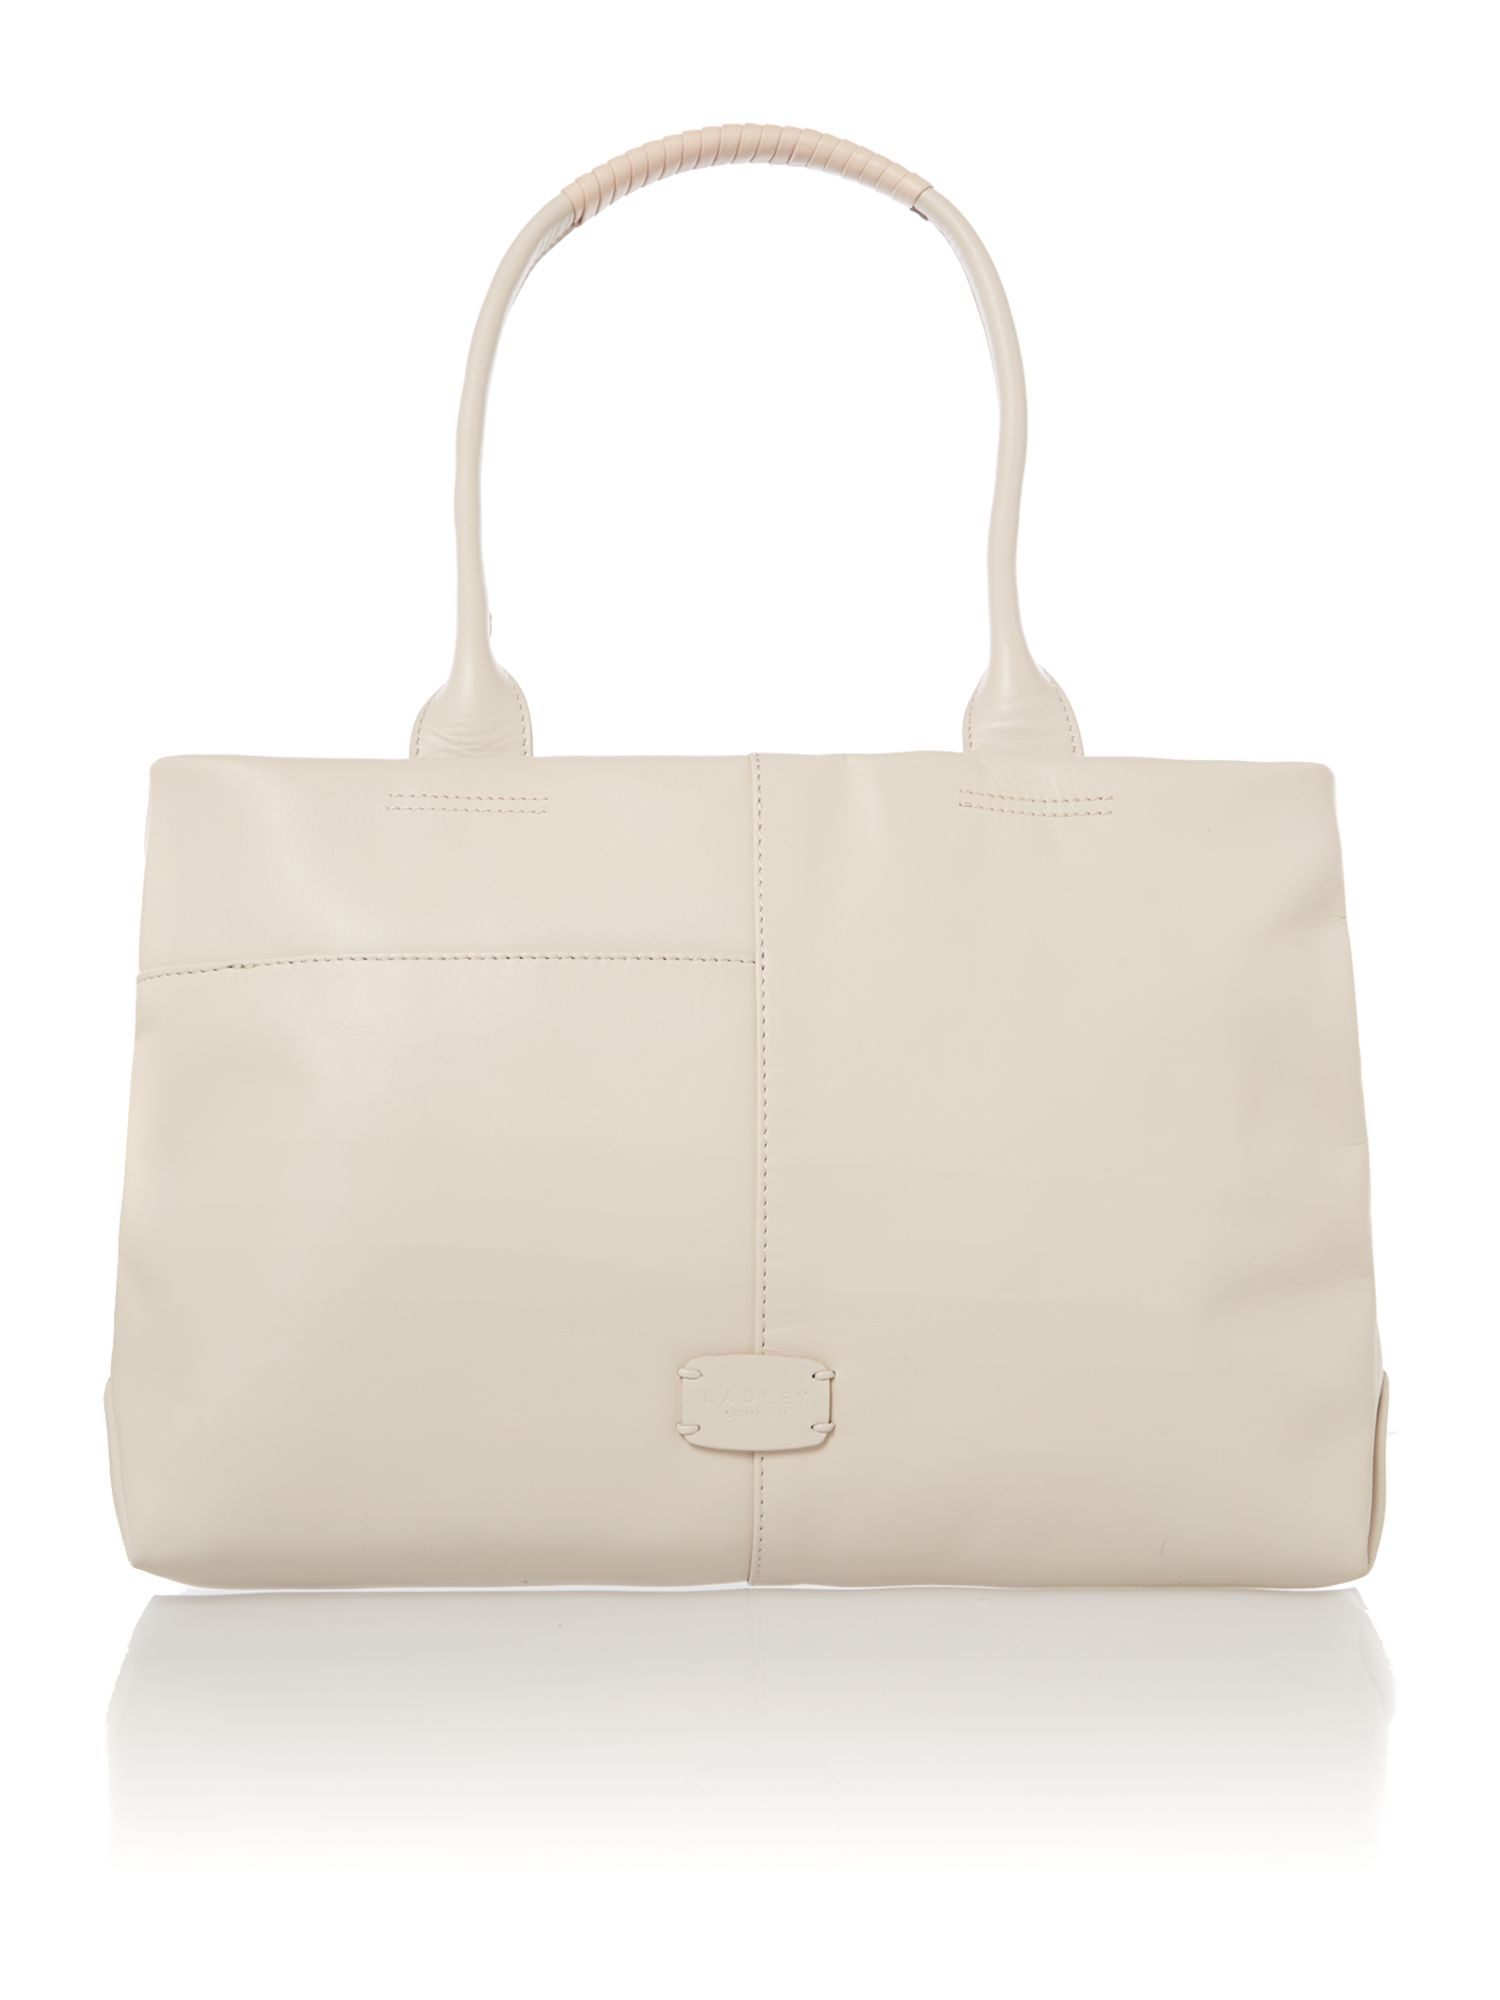 Bayford cream small tote bag